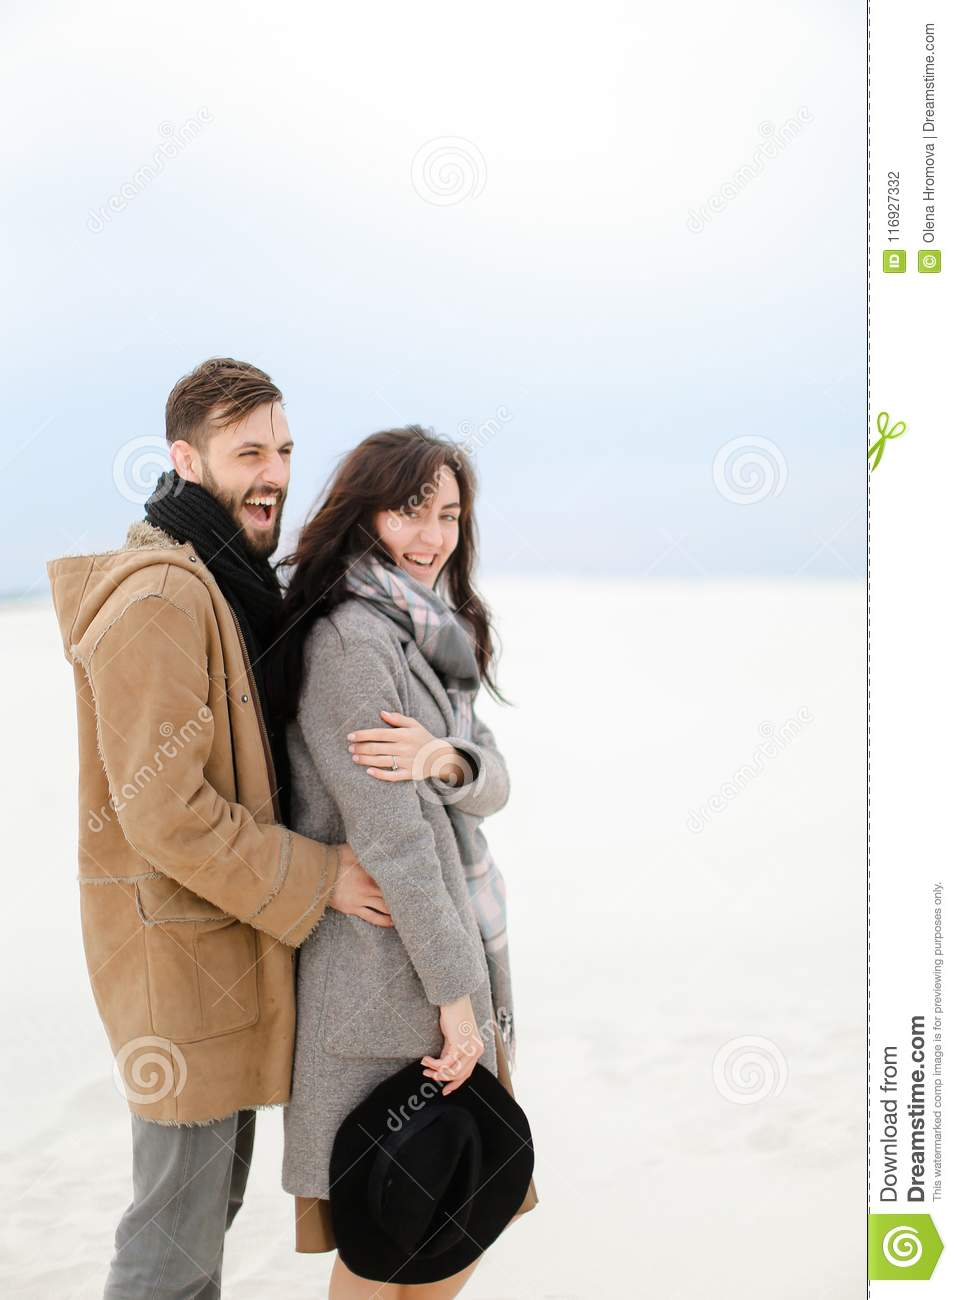 Happy young man hugging female person wearing grey coat and scarf, white winter monophonic background.